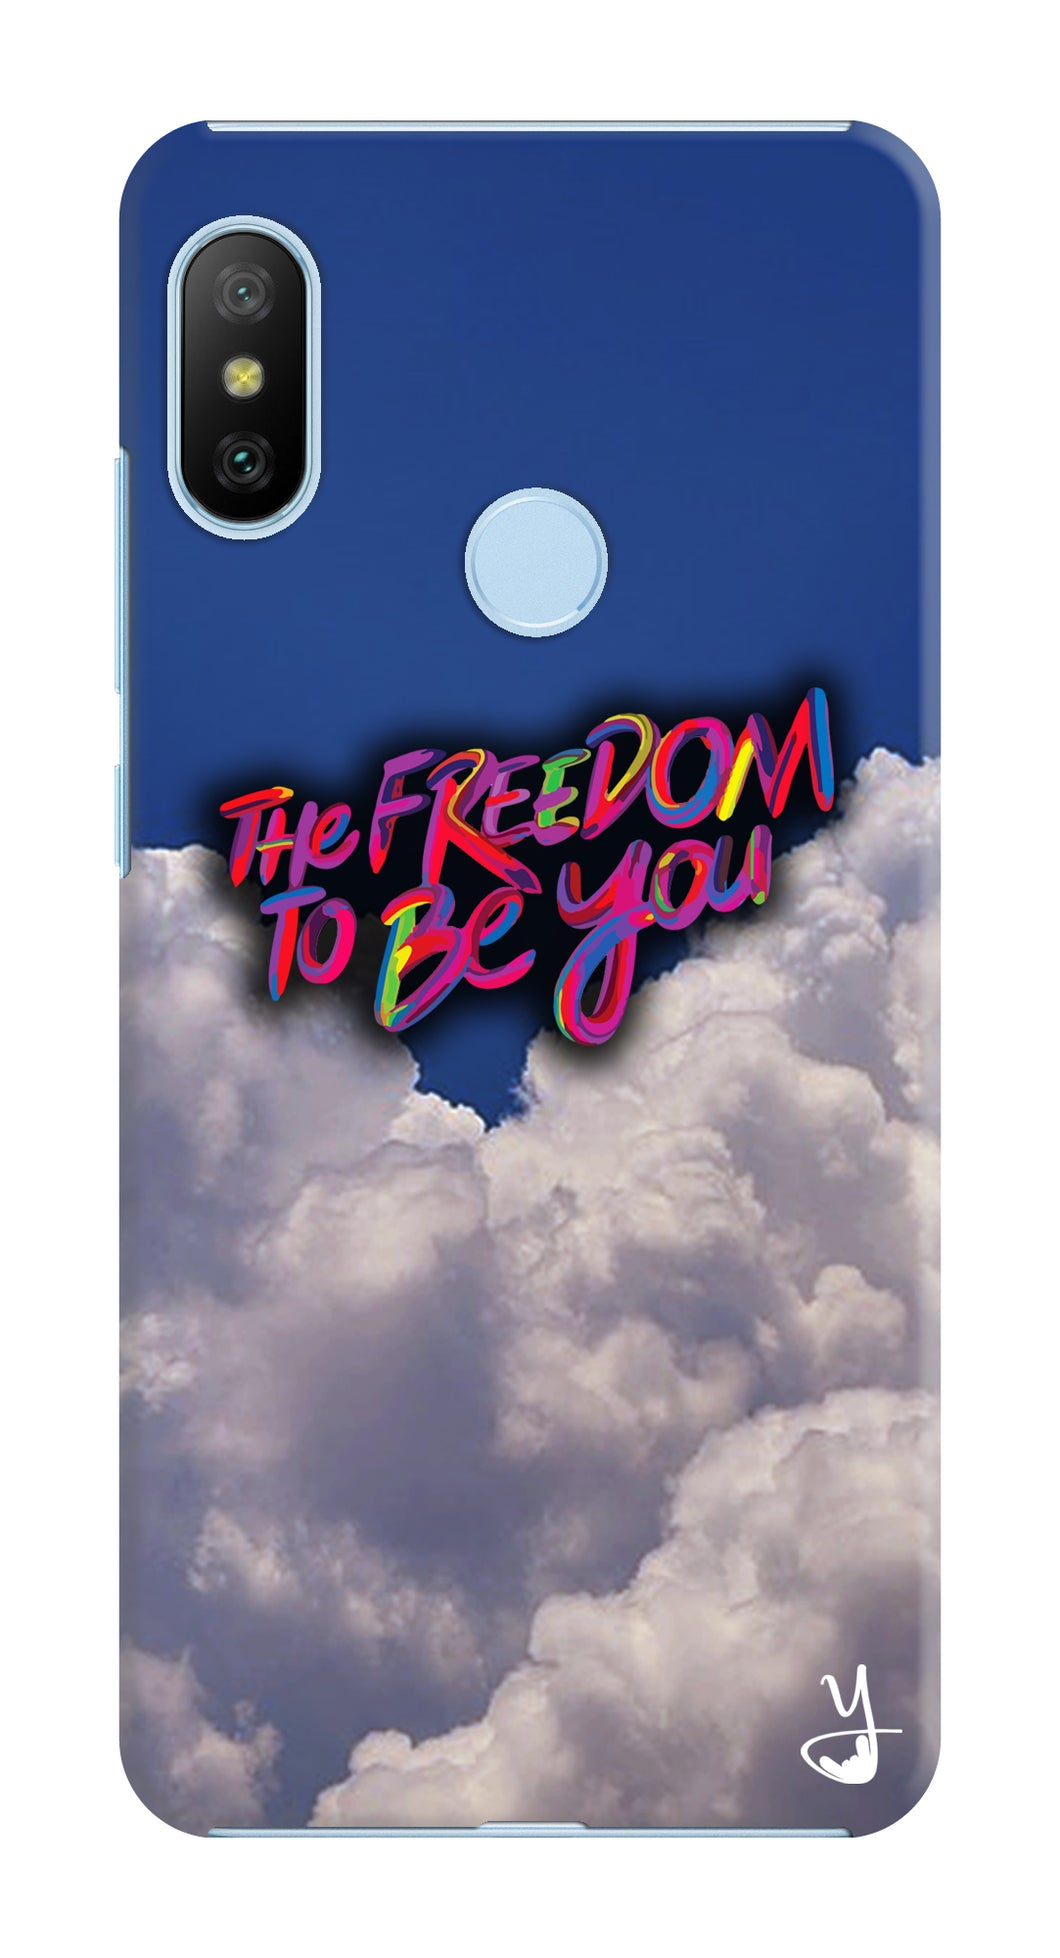 Freedom To Be You for Redmi 6 Pro (A2 Lite)